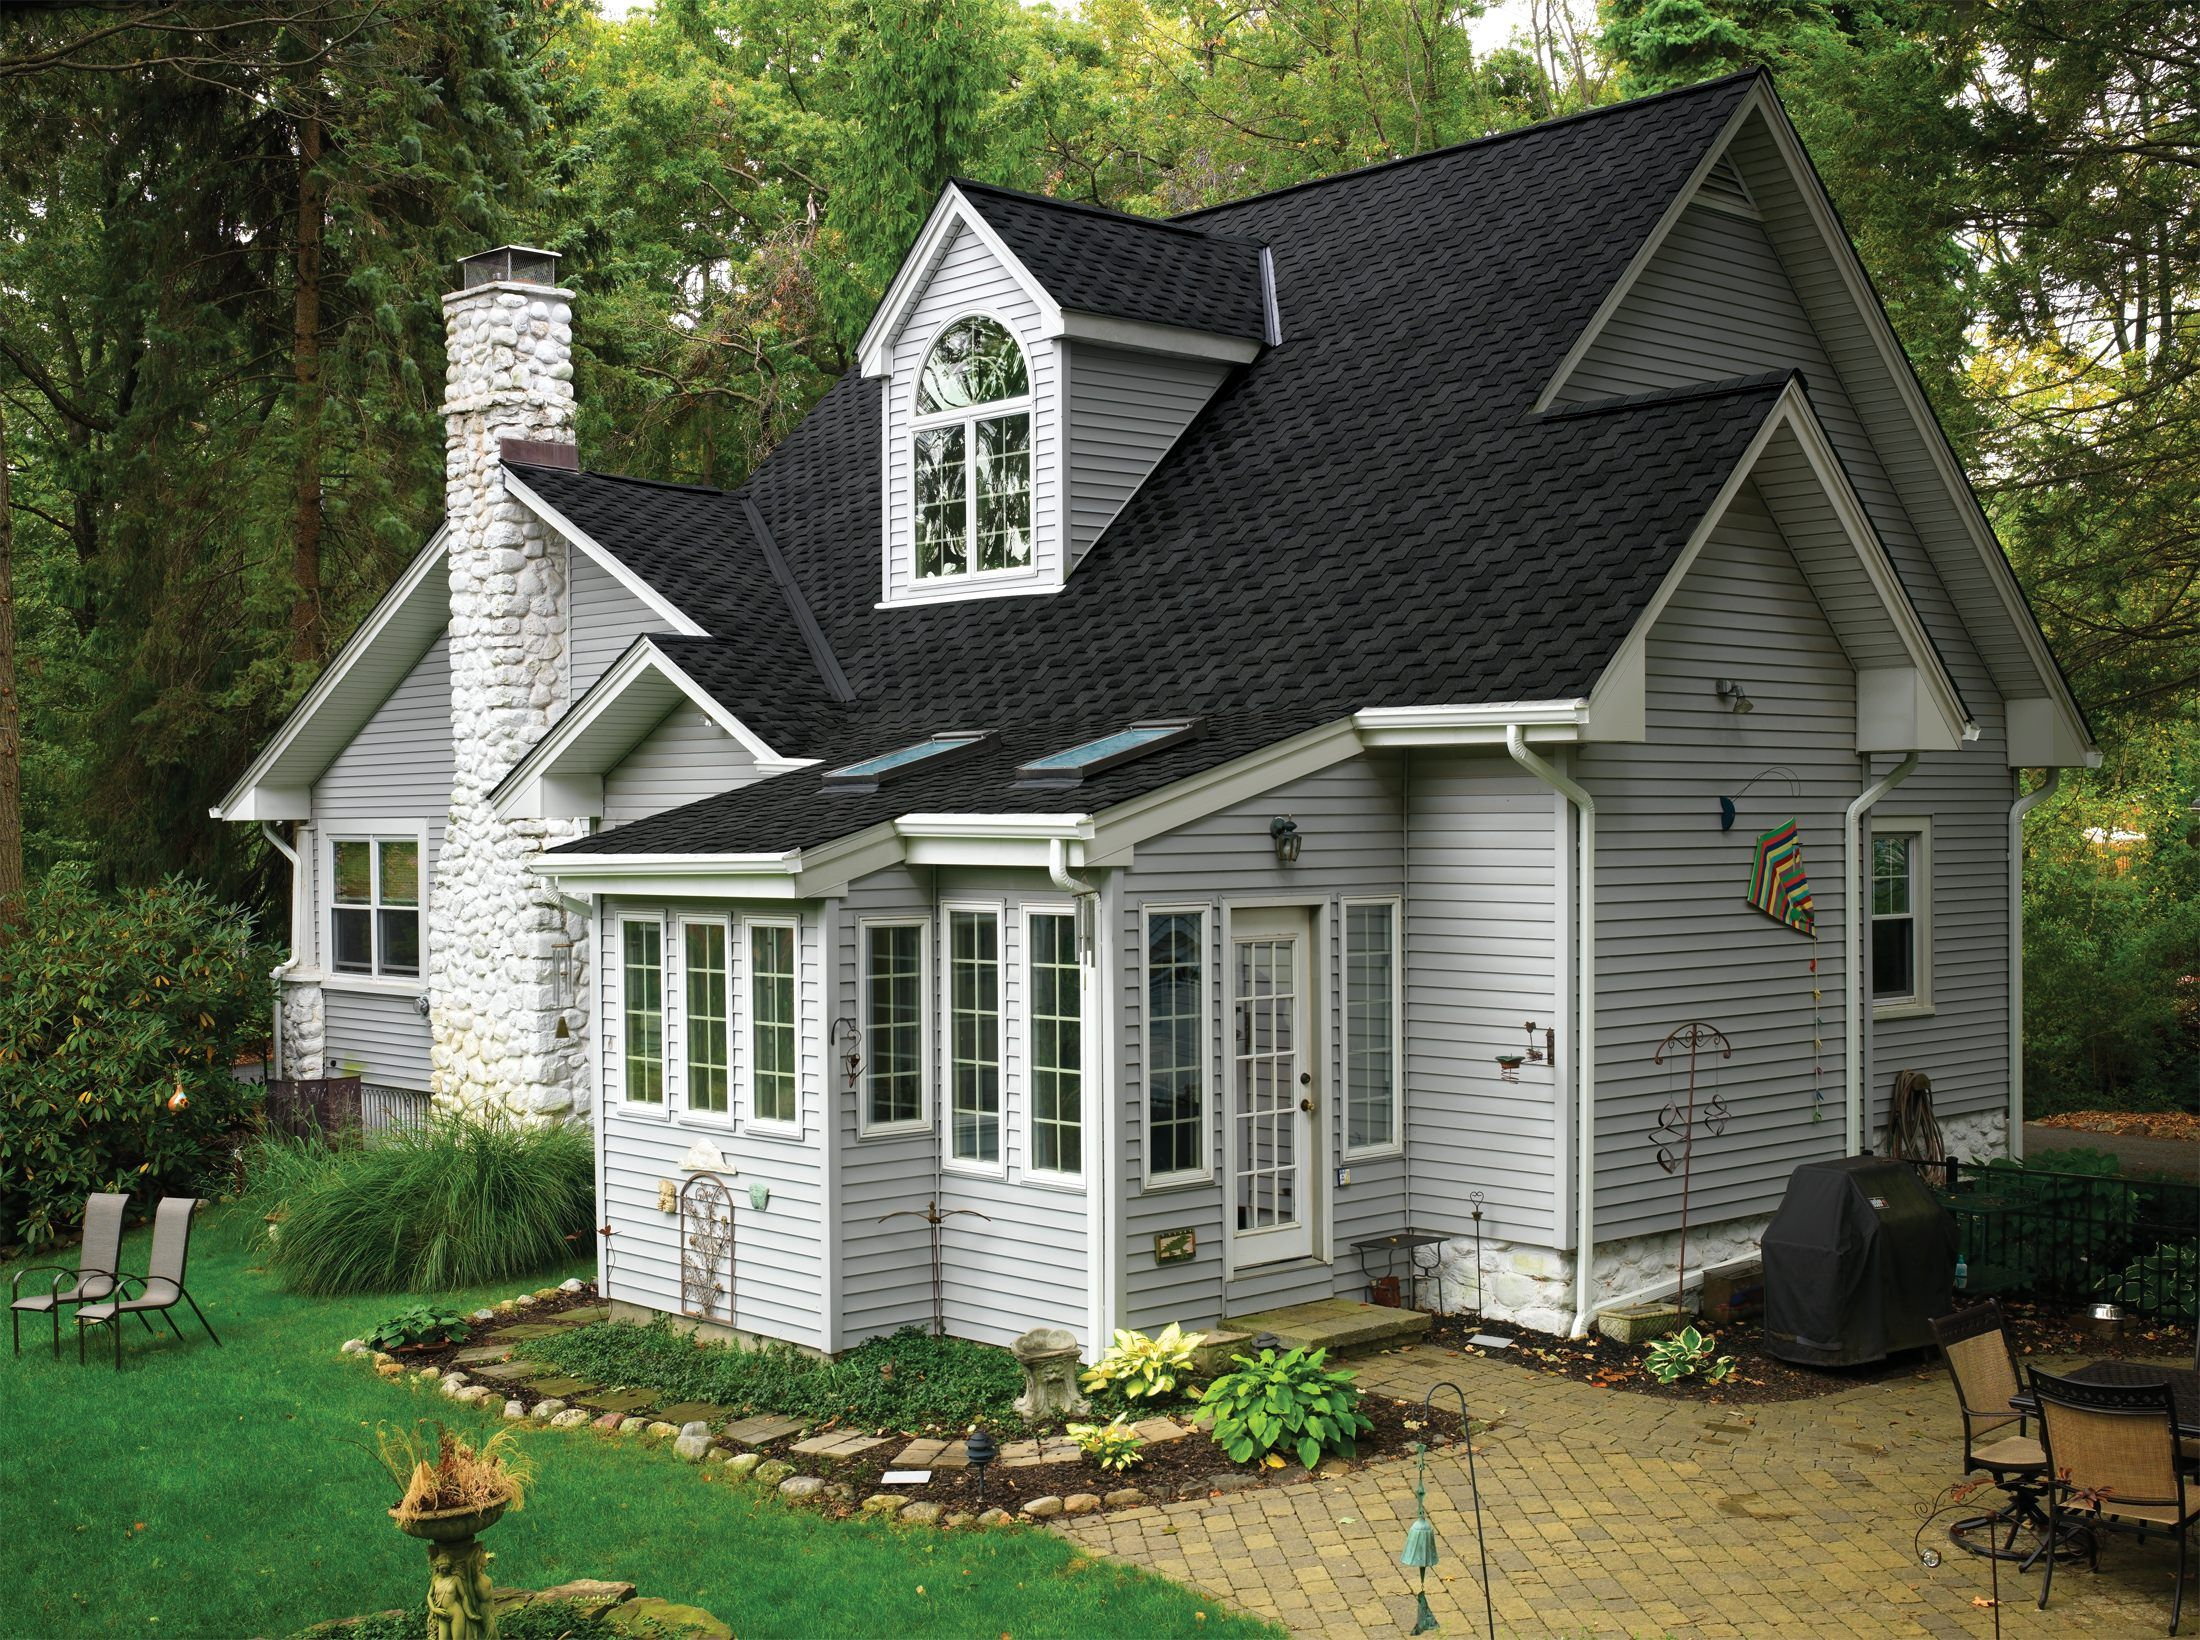 Houses With Charcoal Roofs   Yahoo Image Search Results